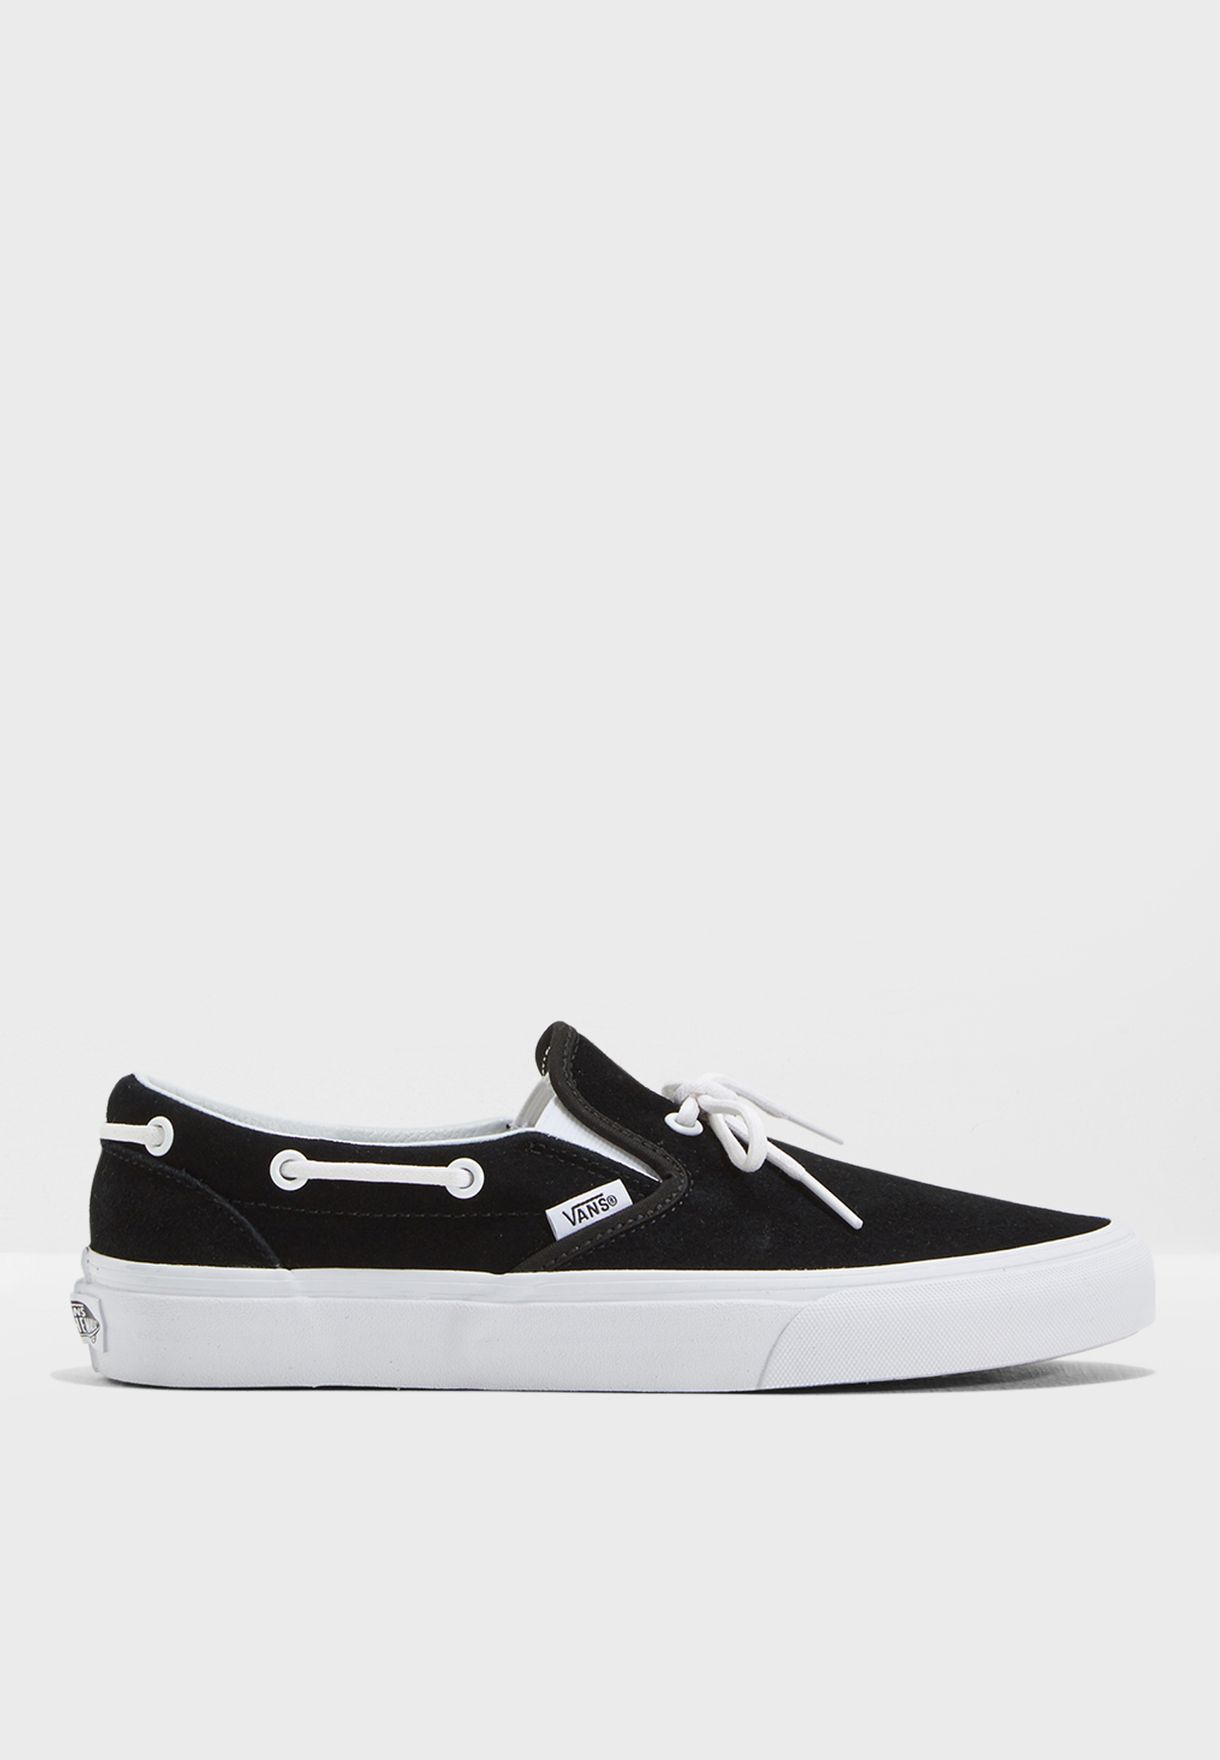 08f1cc3d96 Shop Vans black Lacey 72 Slip Ons MUMQL6 for Women in Globally ...